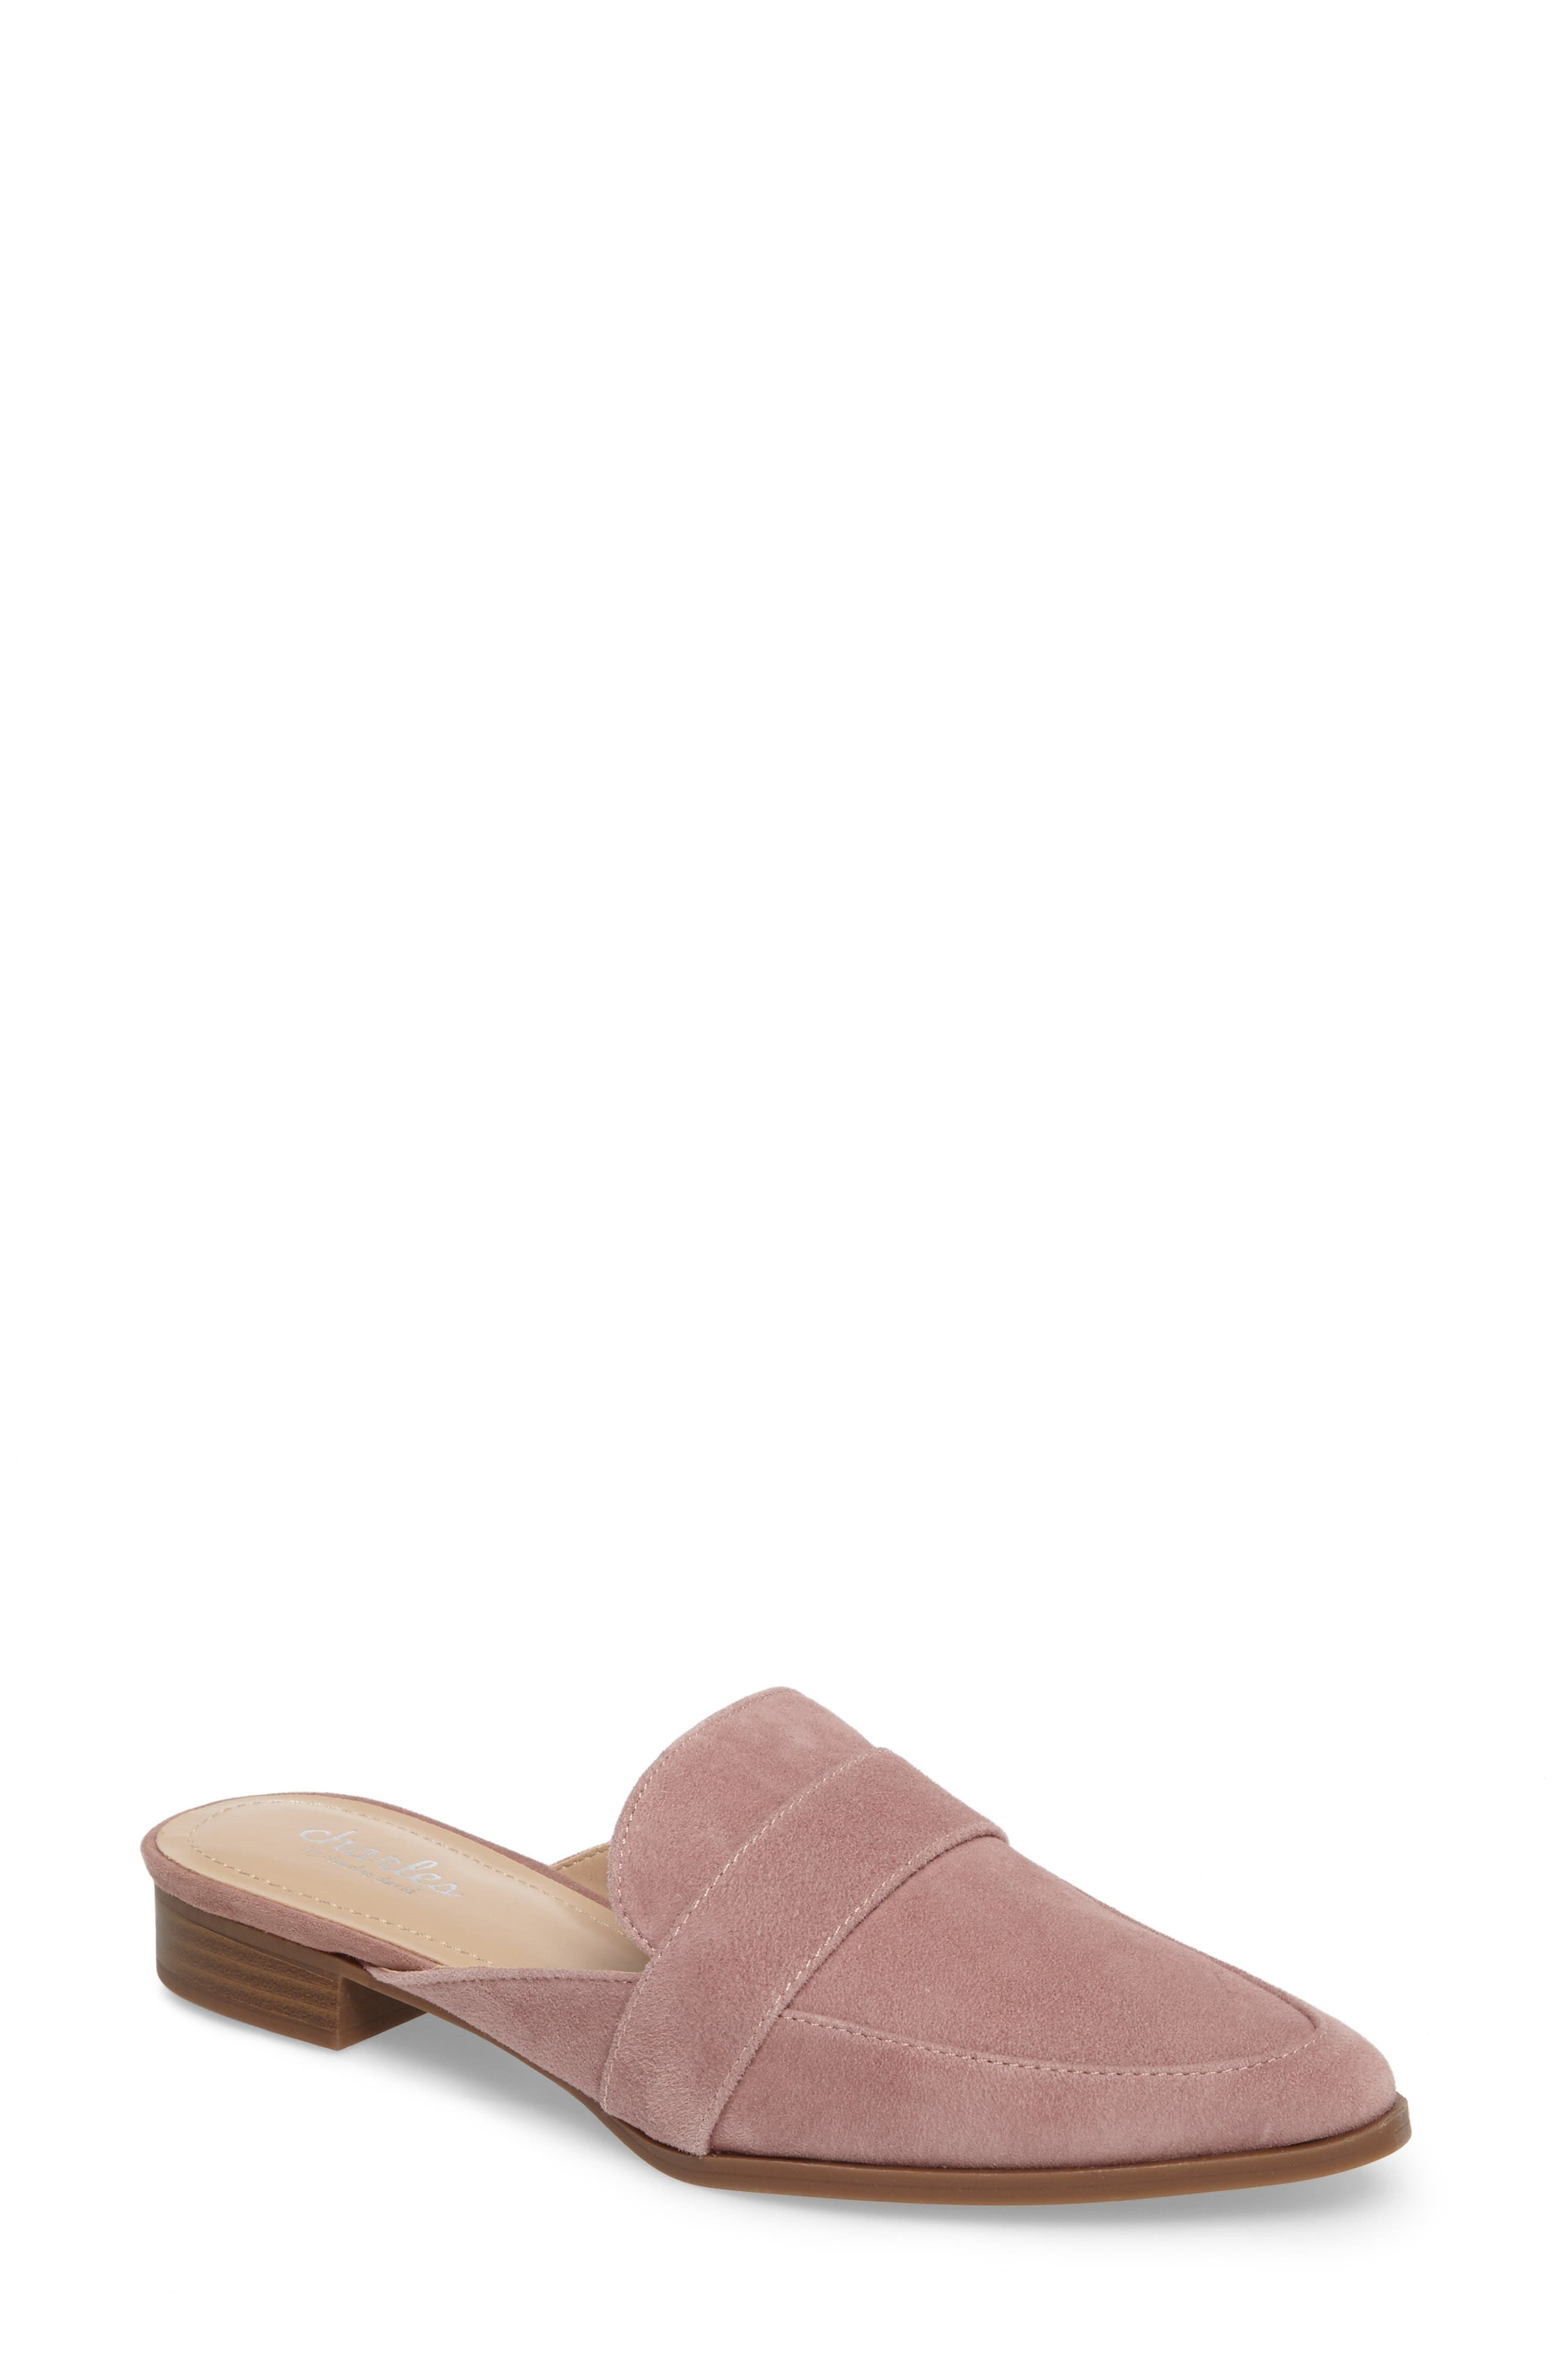 Main Image - Charles by Charles David Emma Loafer Mule (Women)